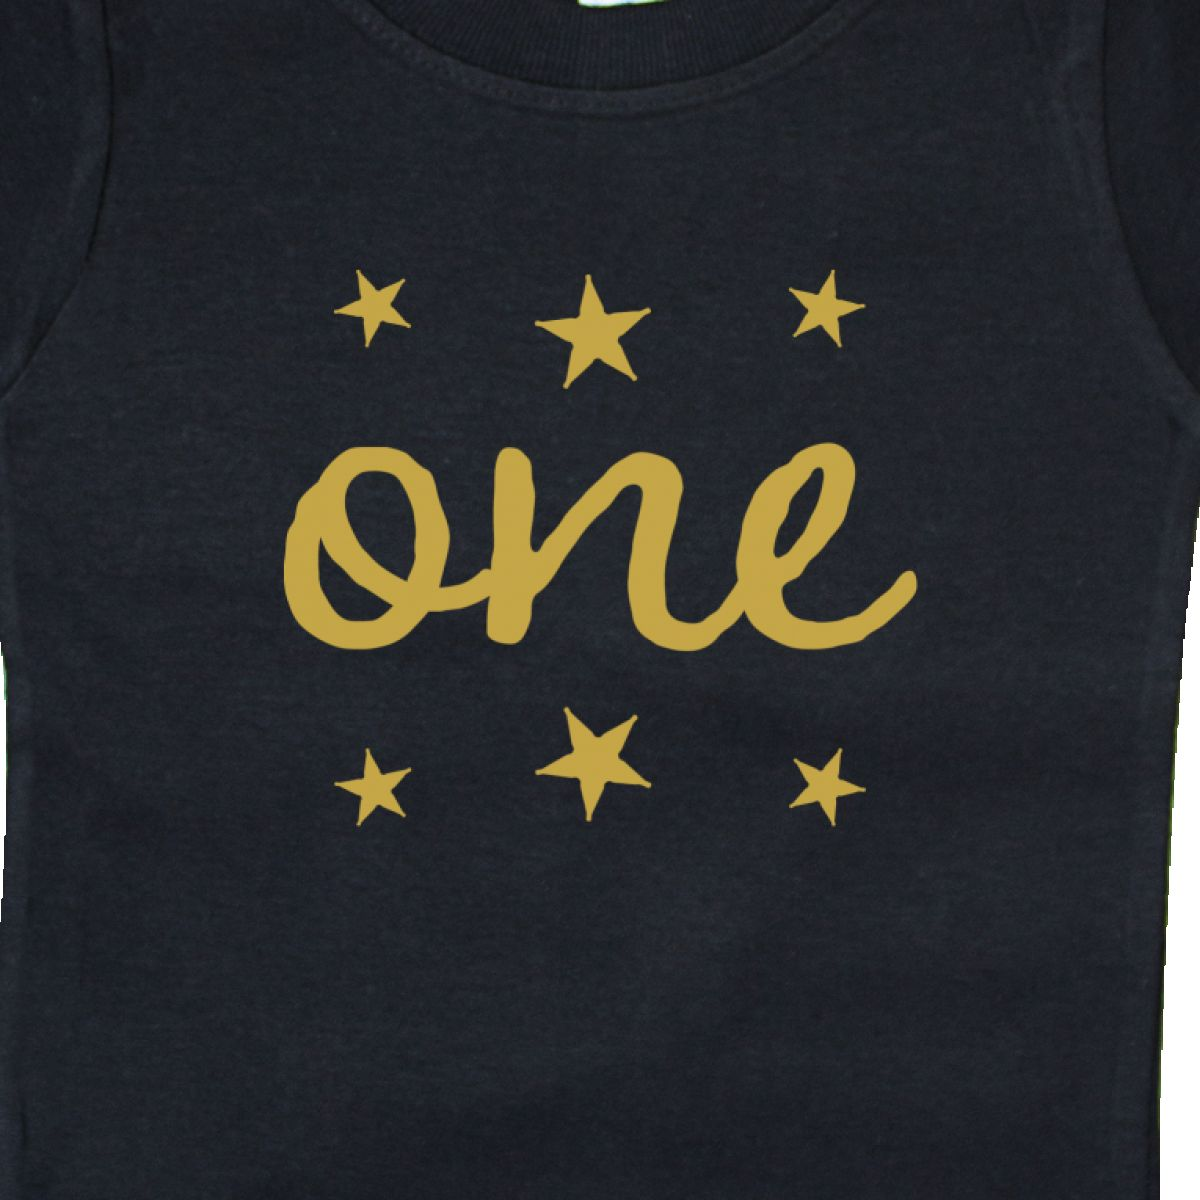 Inktastic-1st-Birthday-Outfit-One-Gold-Baby-T-Shirt-Apparel-Im-Cute-Boy-Girl-Hws thumbnail 4